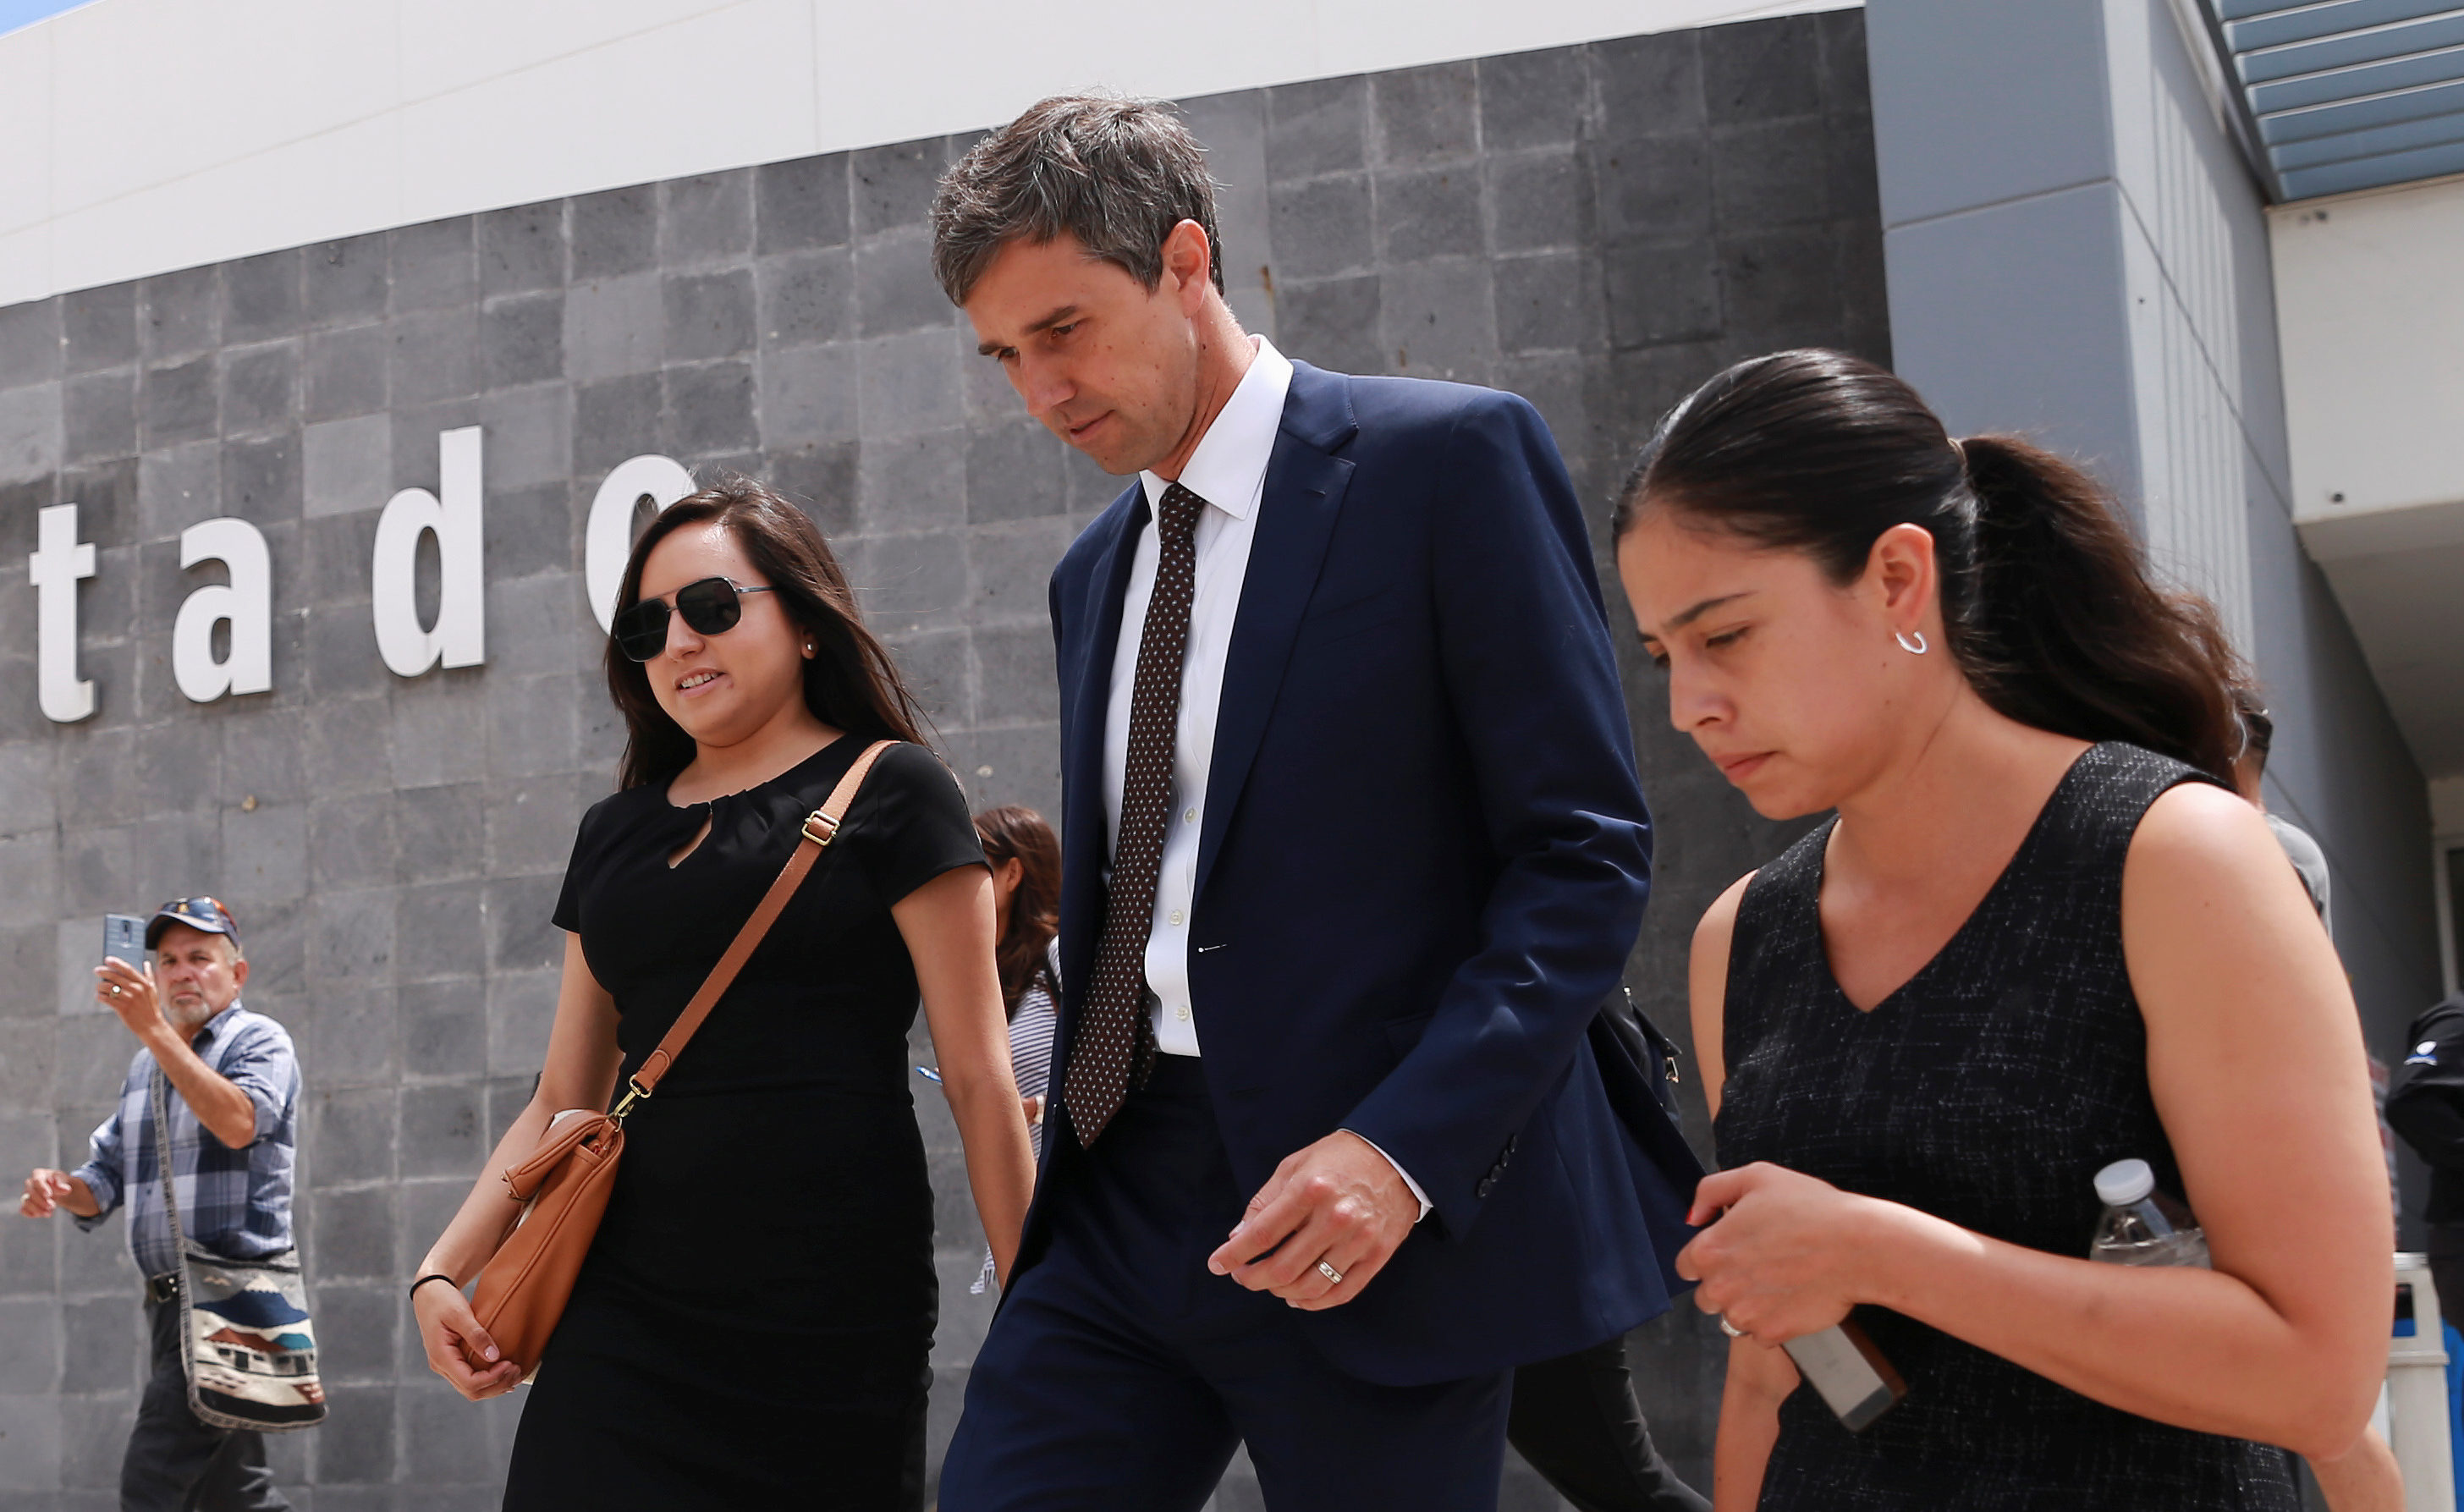 Democratic presidential candidate Beto O'Rourke leaves the state government facilities after a meeting with Chihuahua's governor Javier Corral and Ciudad Juarez Mayor Armando, in Ciudad Juarez, Mexico August 8, 2019. REUTERS/Carlos Sanchez NO RESALES. NO ARCHIVES - RC162F9E2CD0